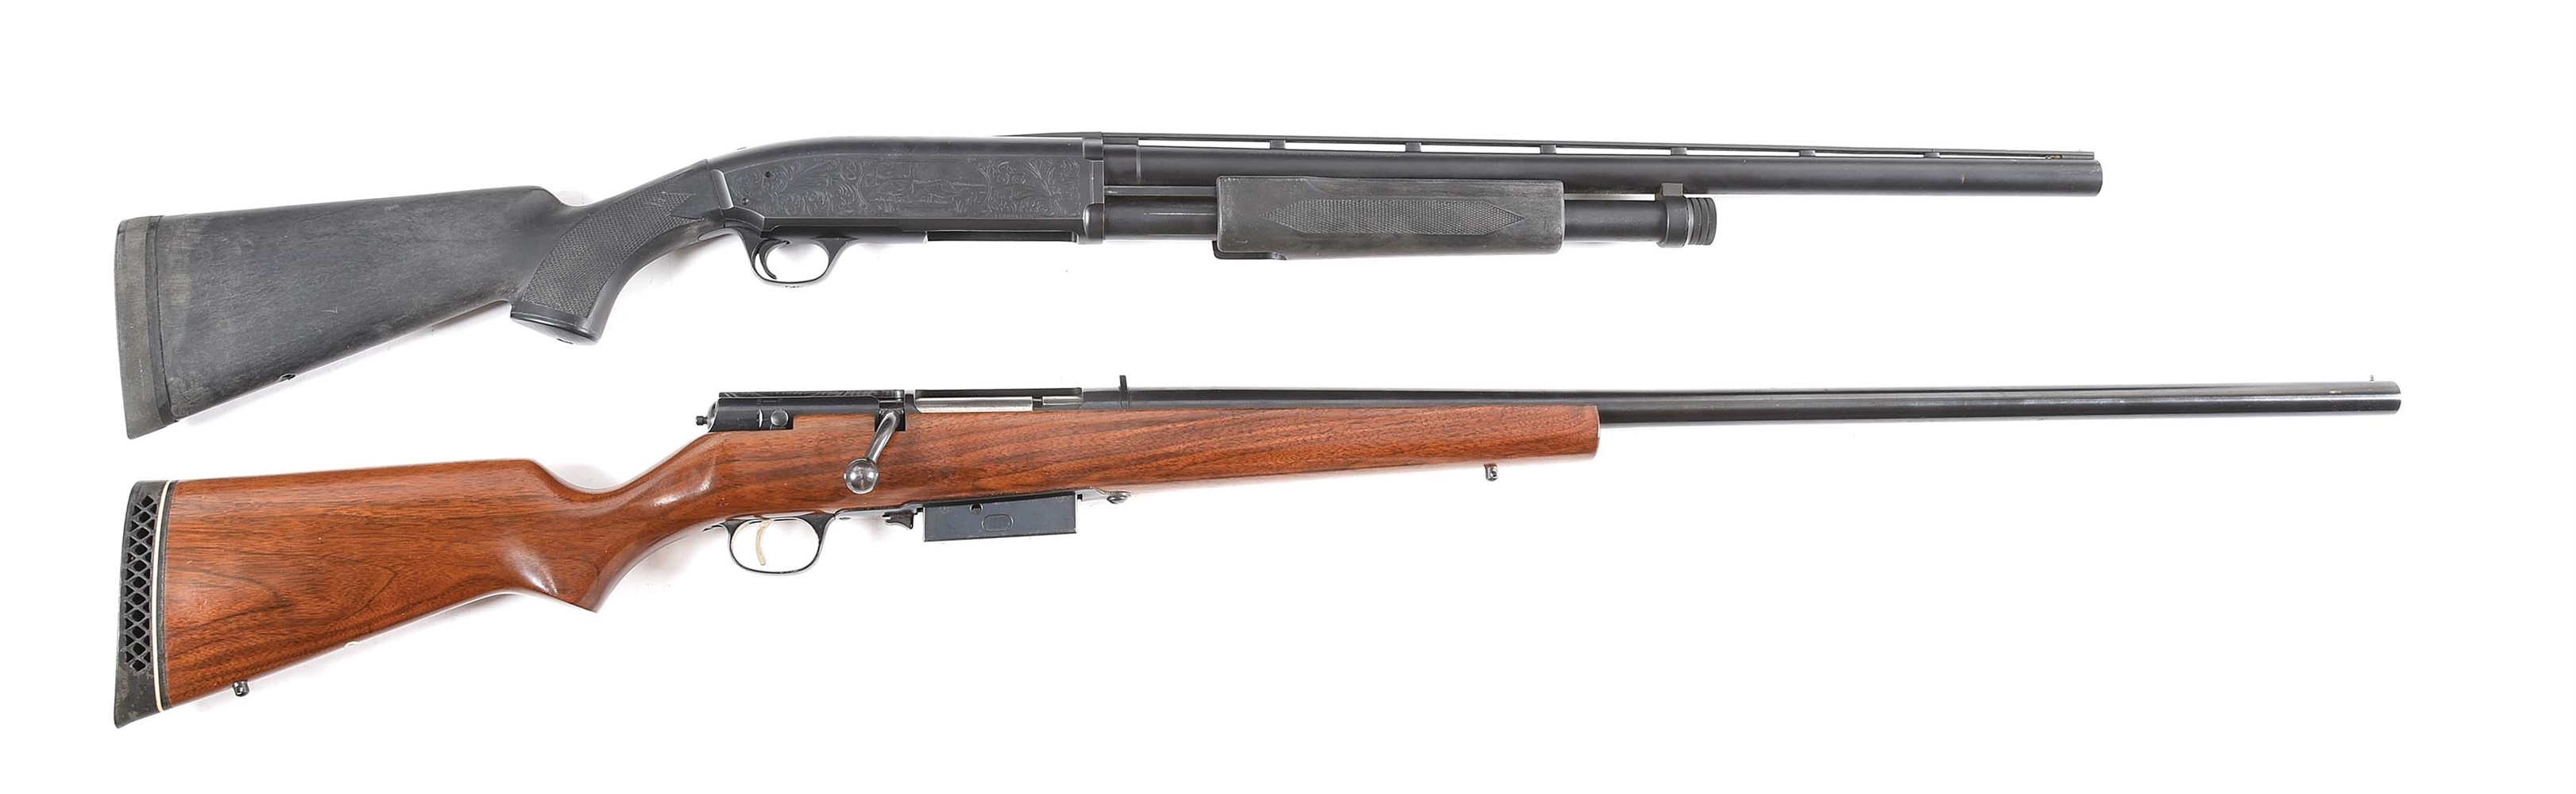 (M) LOT OF 2: BROWNING BPS AND MARLIN SUPER GOOSE SHOTGUNS BOTH IN 10 GAUGE.